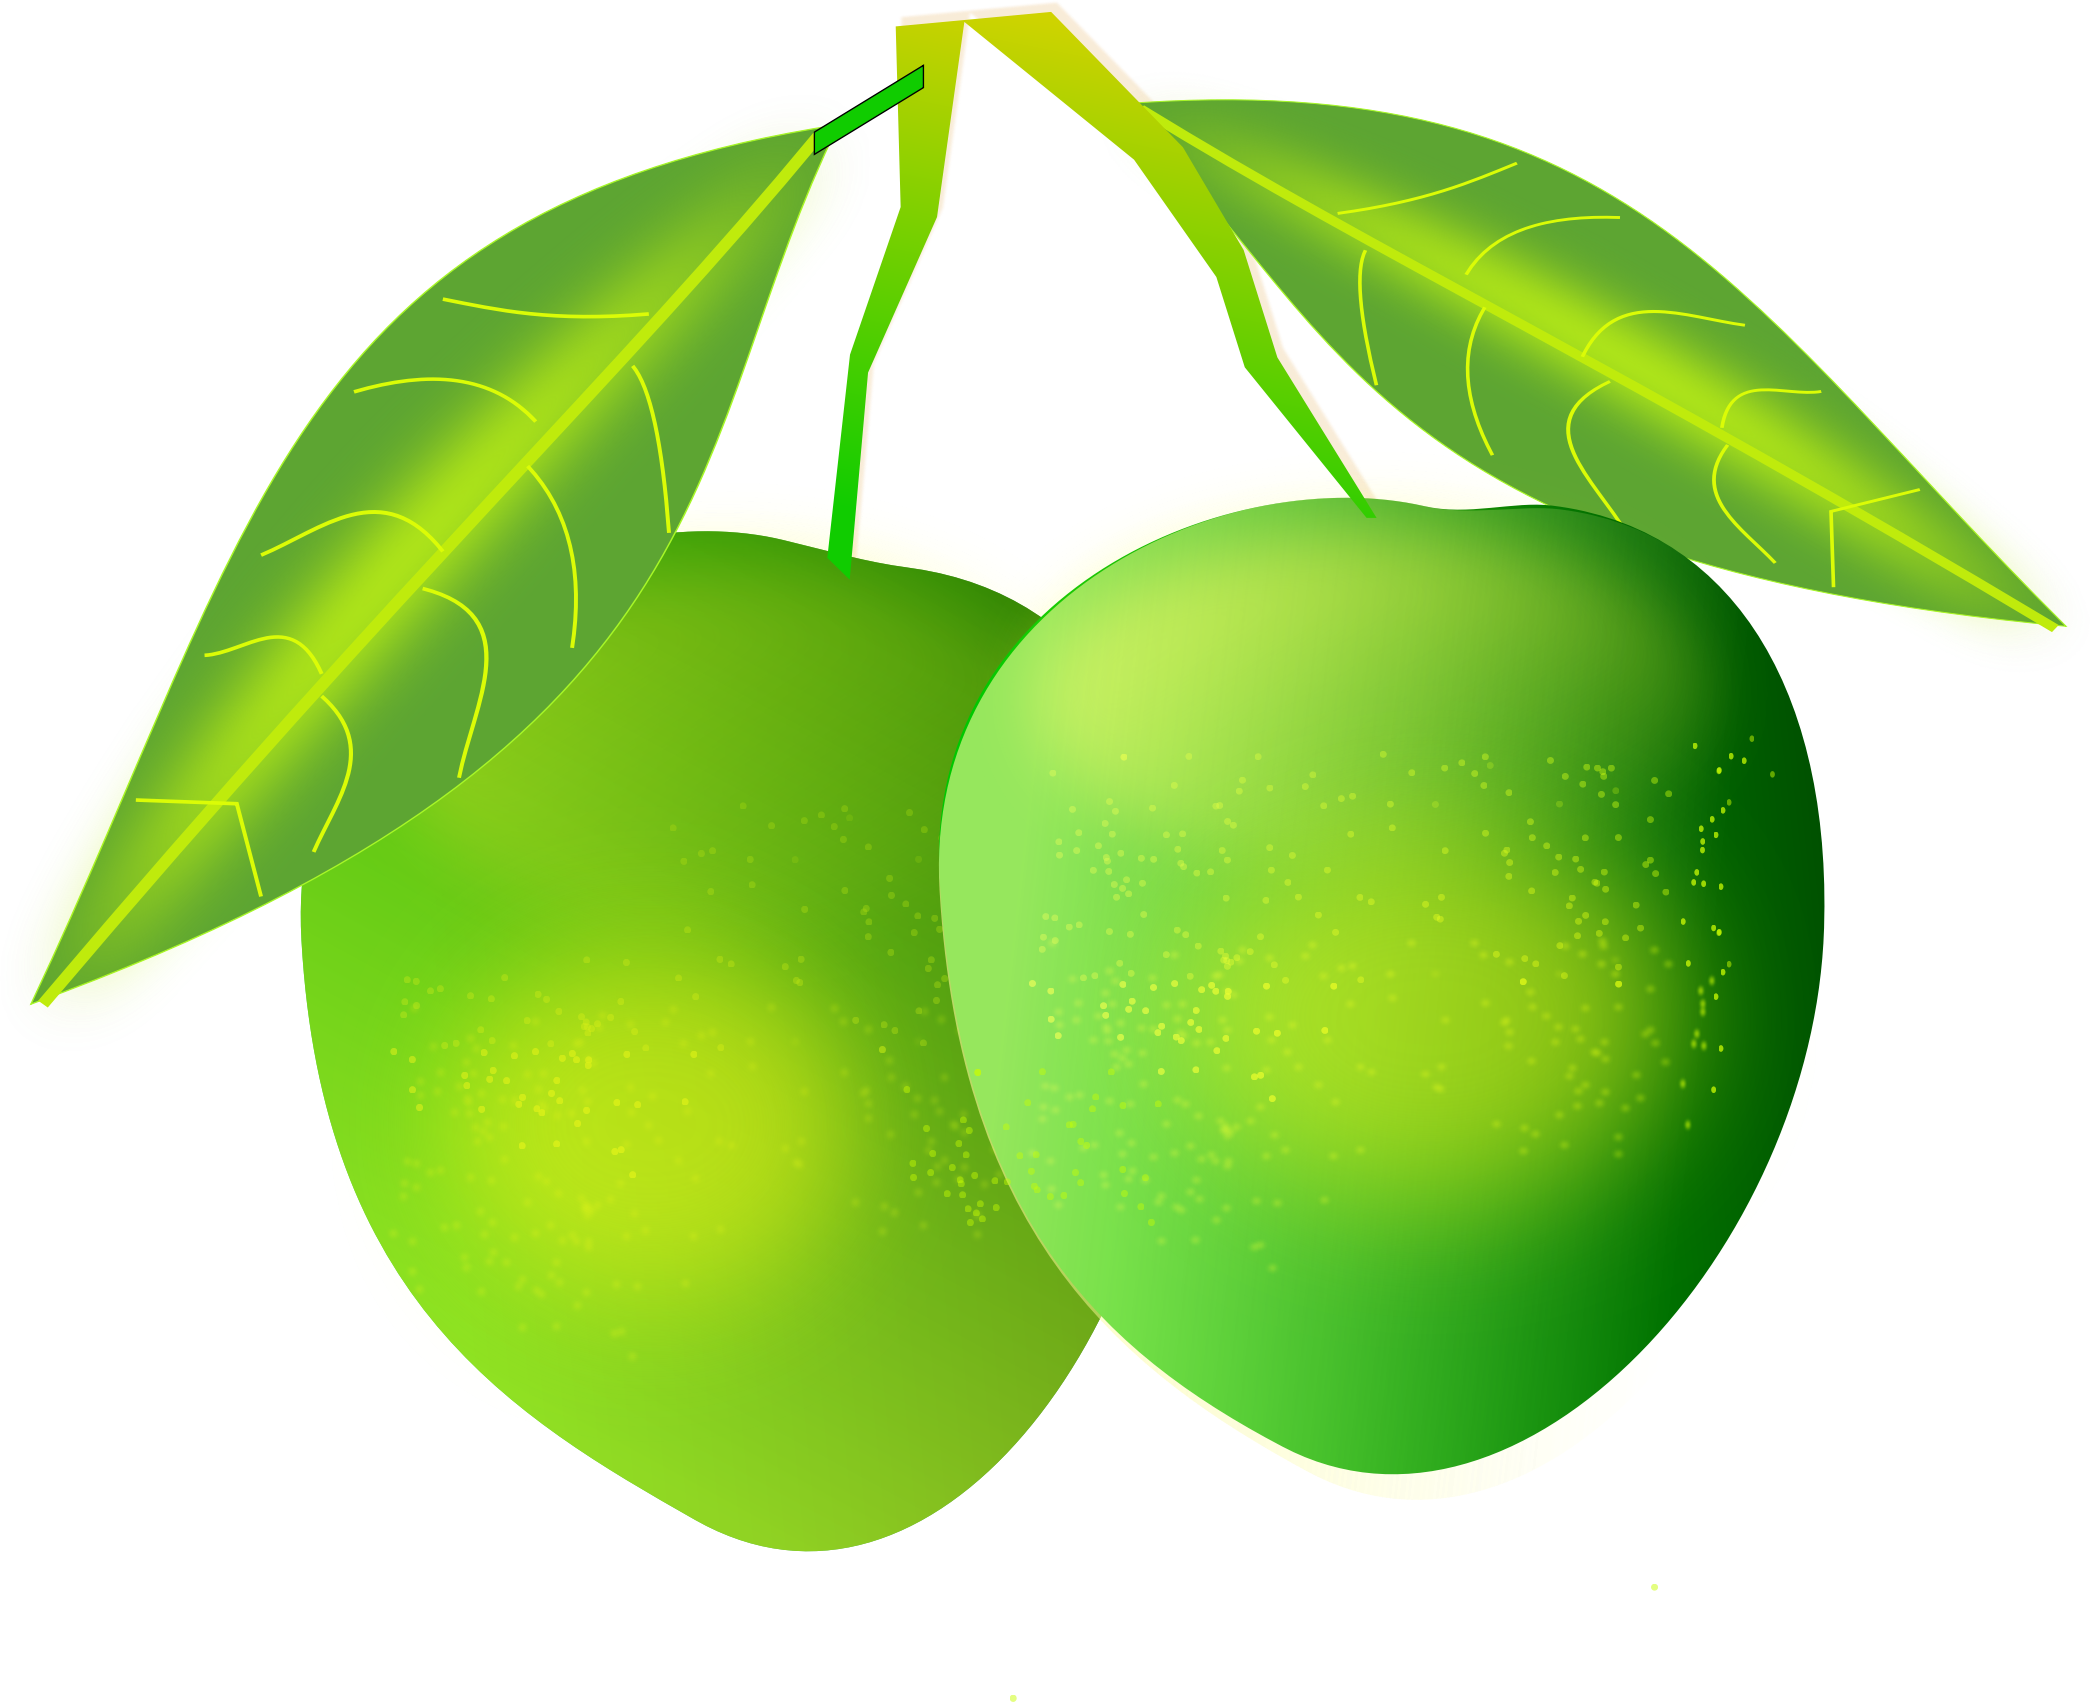 Mango vector png. Images free download image